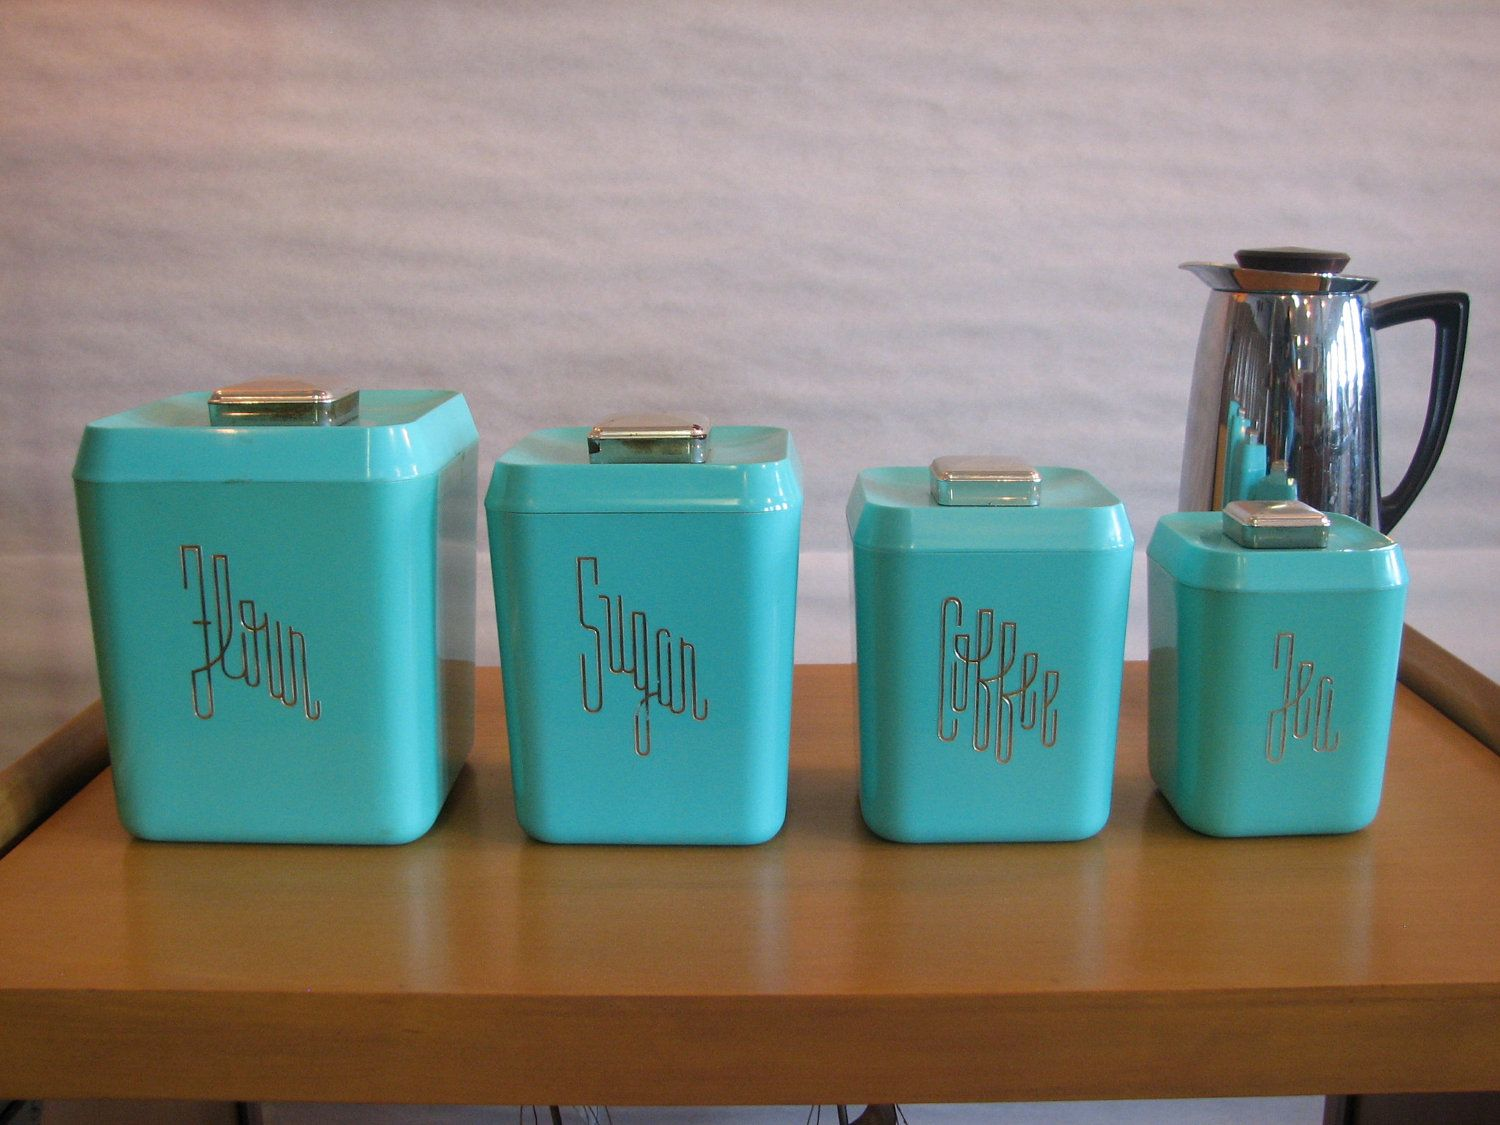 Gentil Mid Century Modern, Vintage 1950s, 60s Plastic Kitchen Canisters. $60.00, I  Love